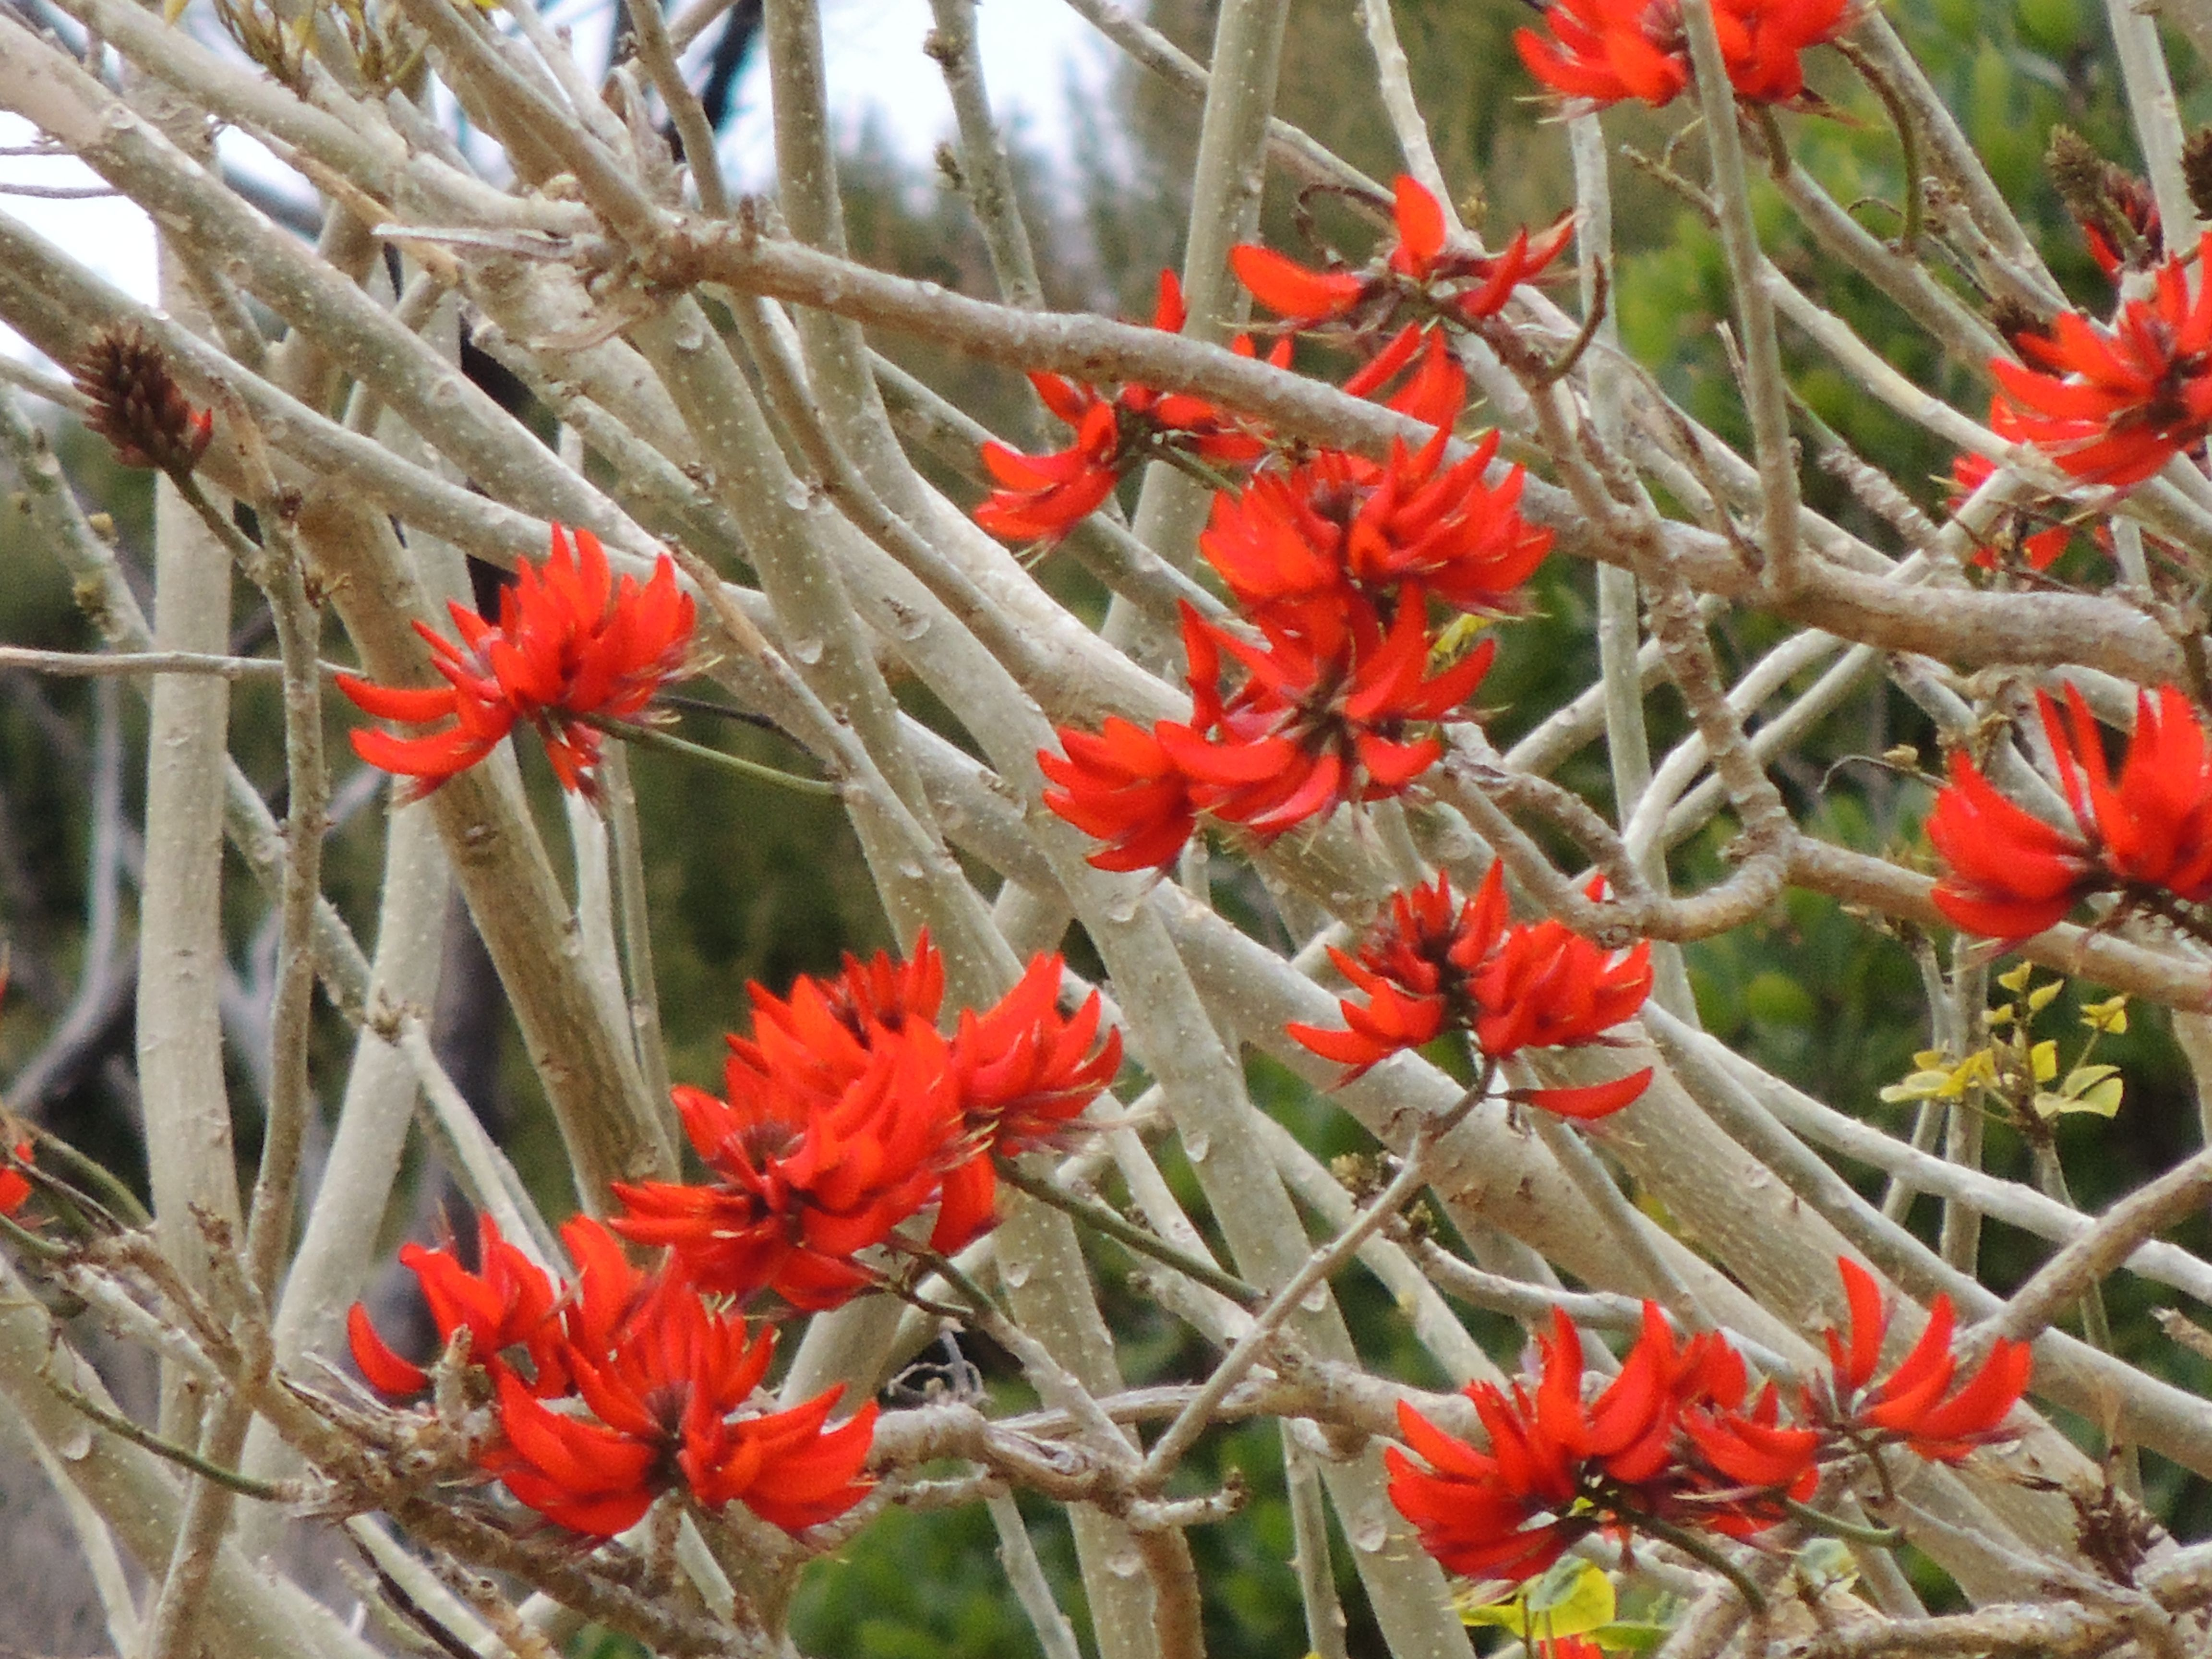 Flame Tree - Picture taken from a private beach - Paihia - Bay of Islands - New Zealand - 30th September 2014 #flametrees #trees #paihia #bayofislands #newzealand